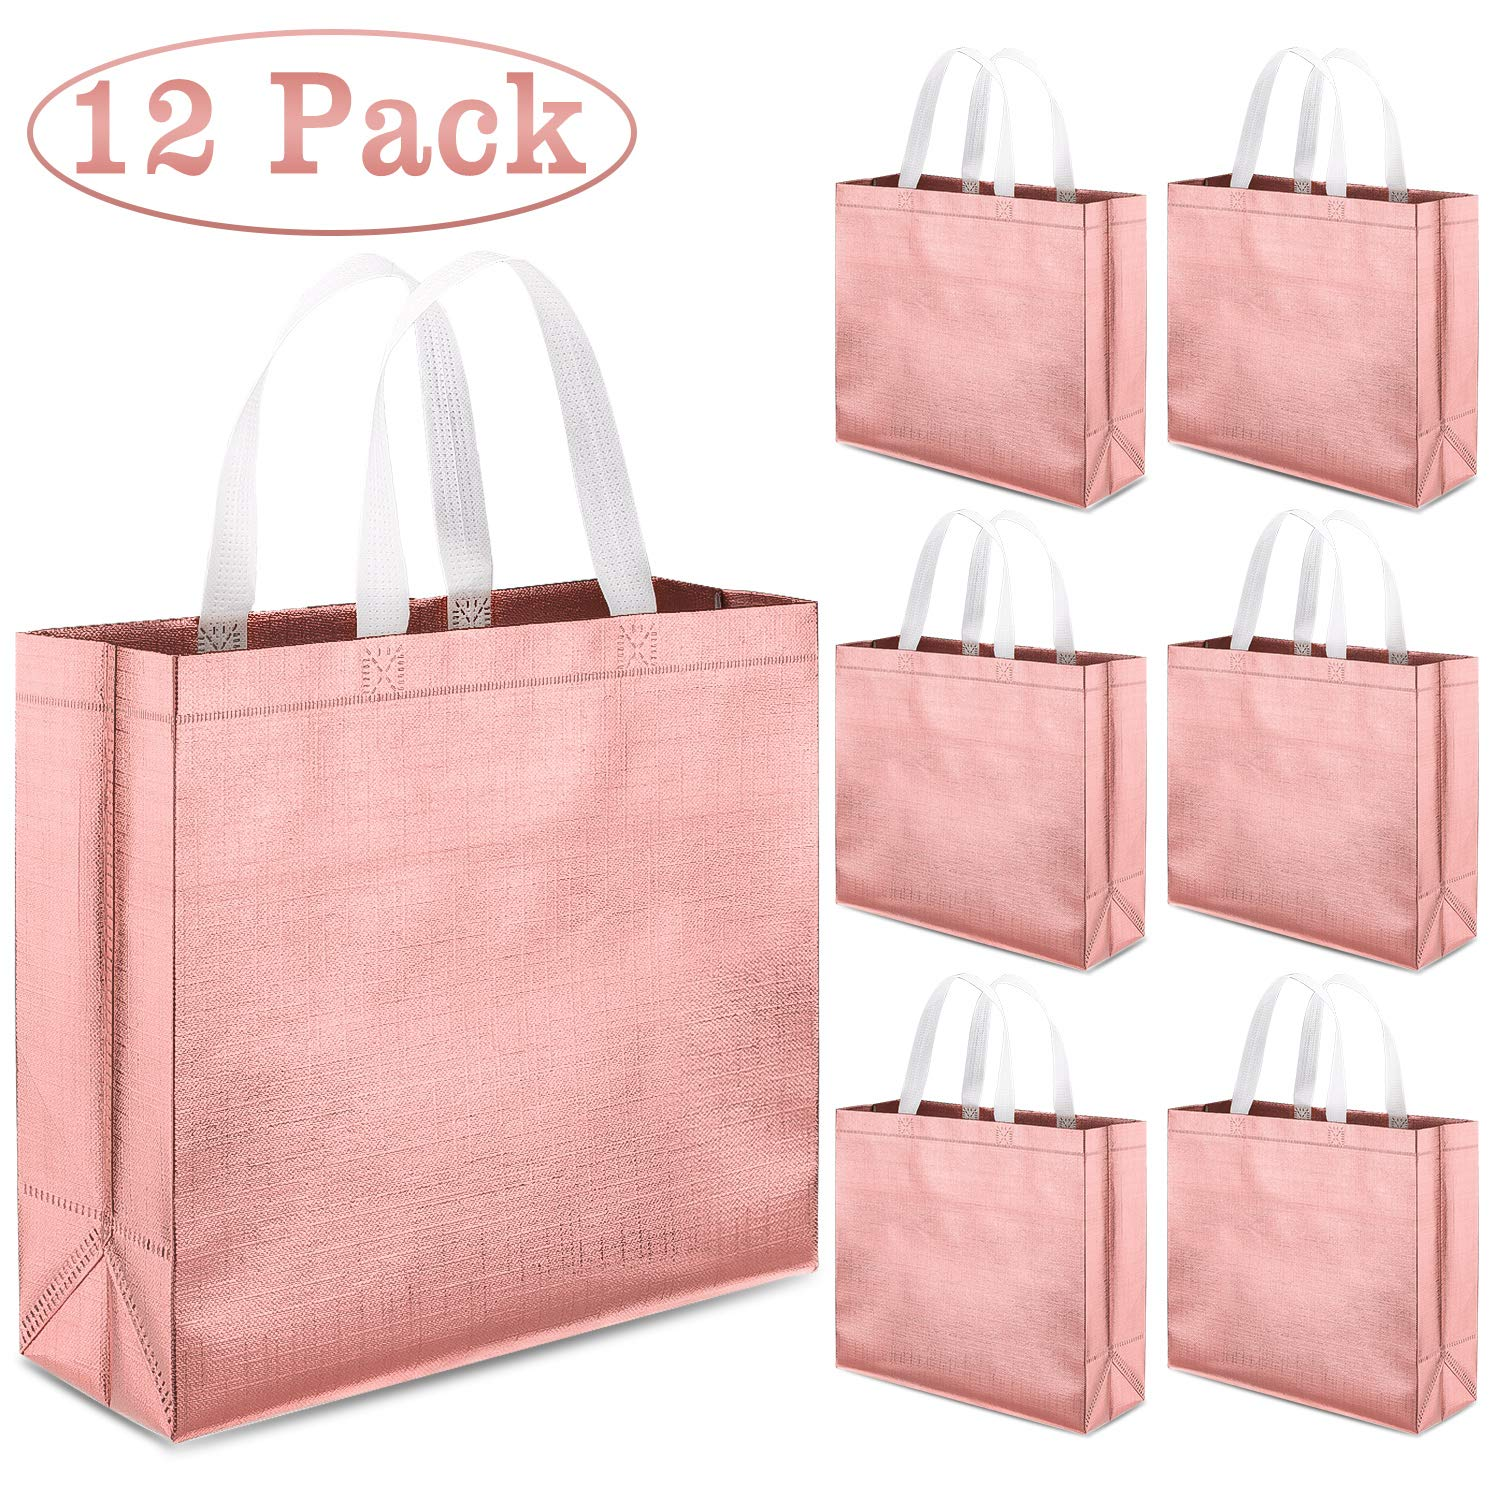 Whaline Set of 12 Glossy Reusable Grocery Bag, Tote Bag with Handle, Non-woven Stylish Present Bag, Gift Bag, Goodies Bag, Shopping Bag, Promotional Bag, for Party, Event, Wedding, Birthday(Rose Gold) by Whaline